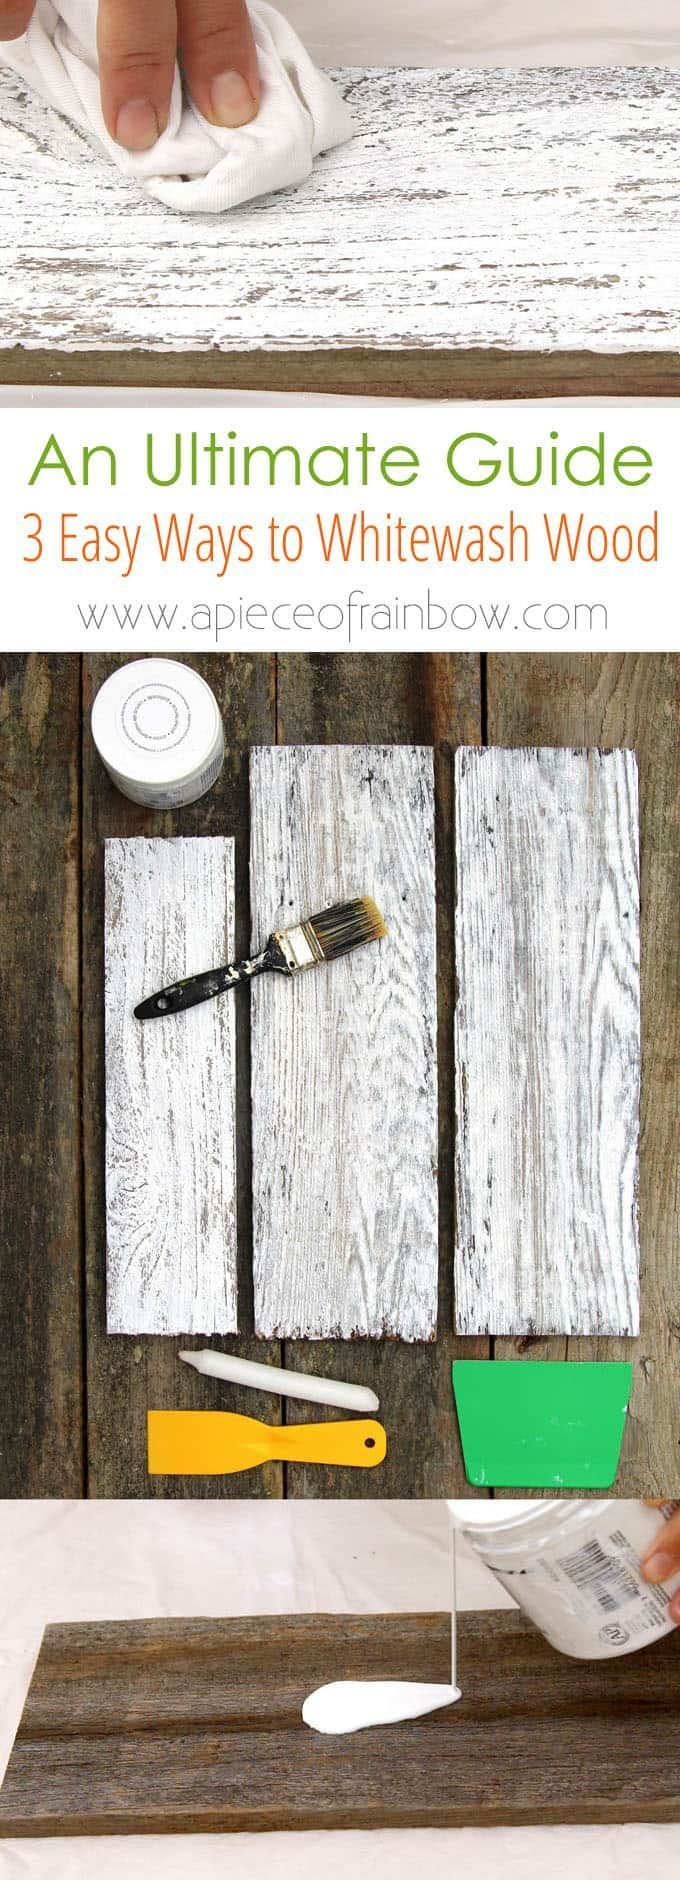 How to Whitewash Wood in 3 Simple